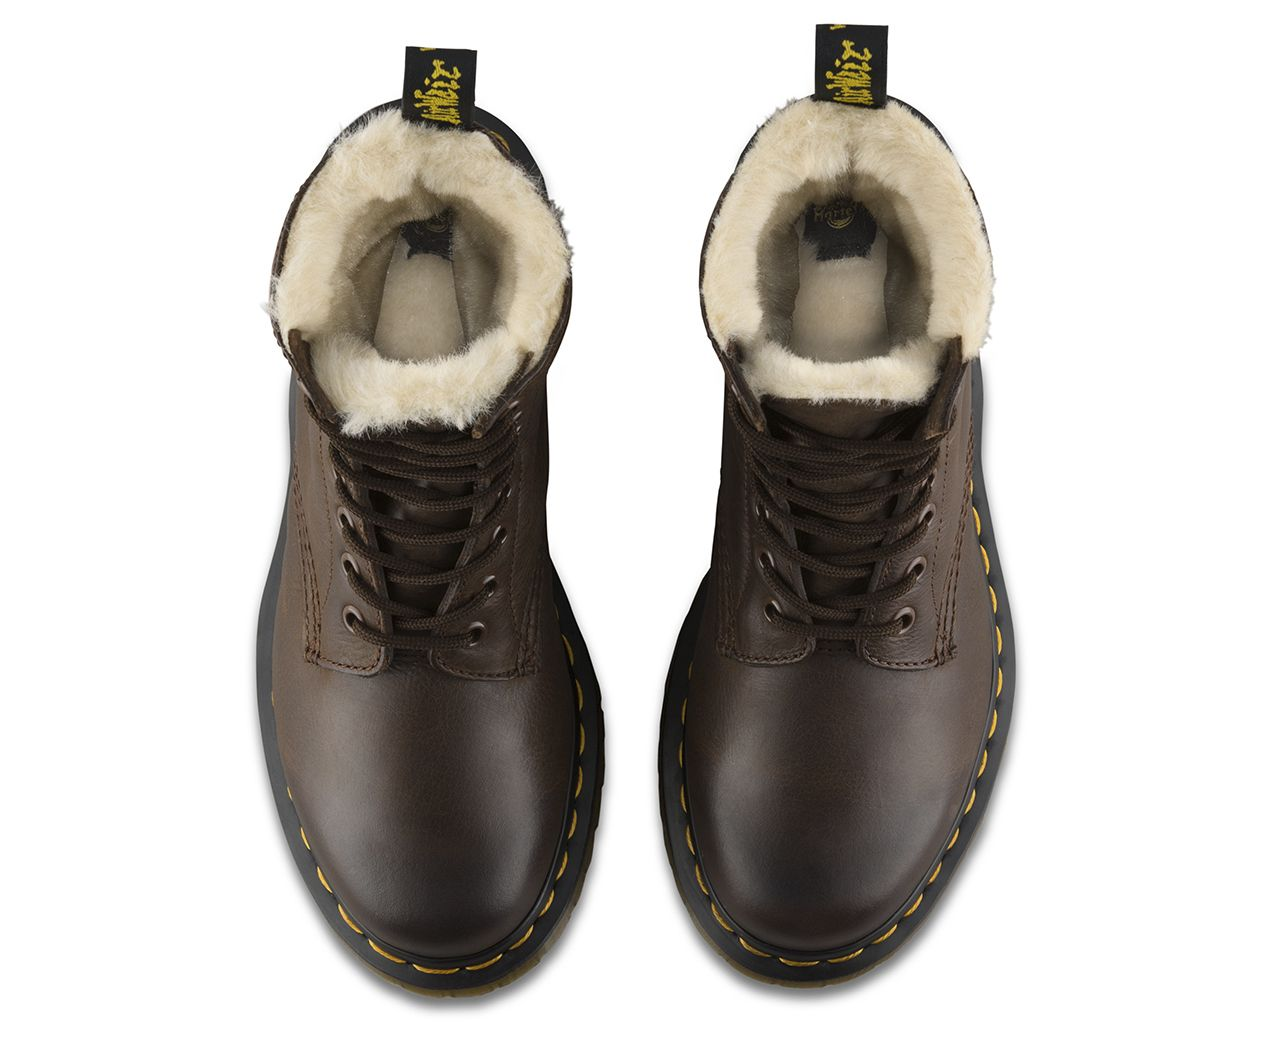 69962e53319f This is a winter twist on the classic Dr. Martens 8-eye boot.